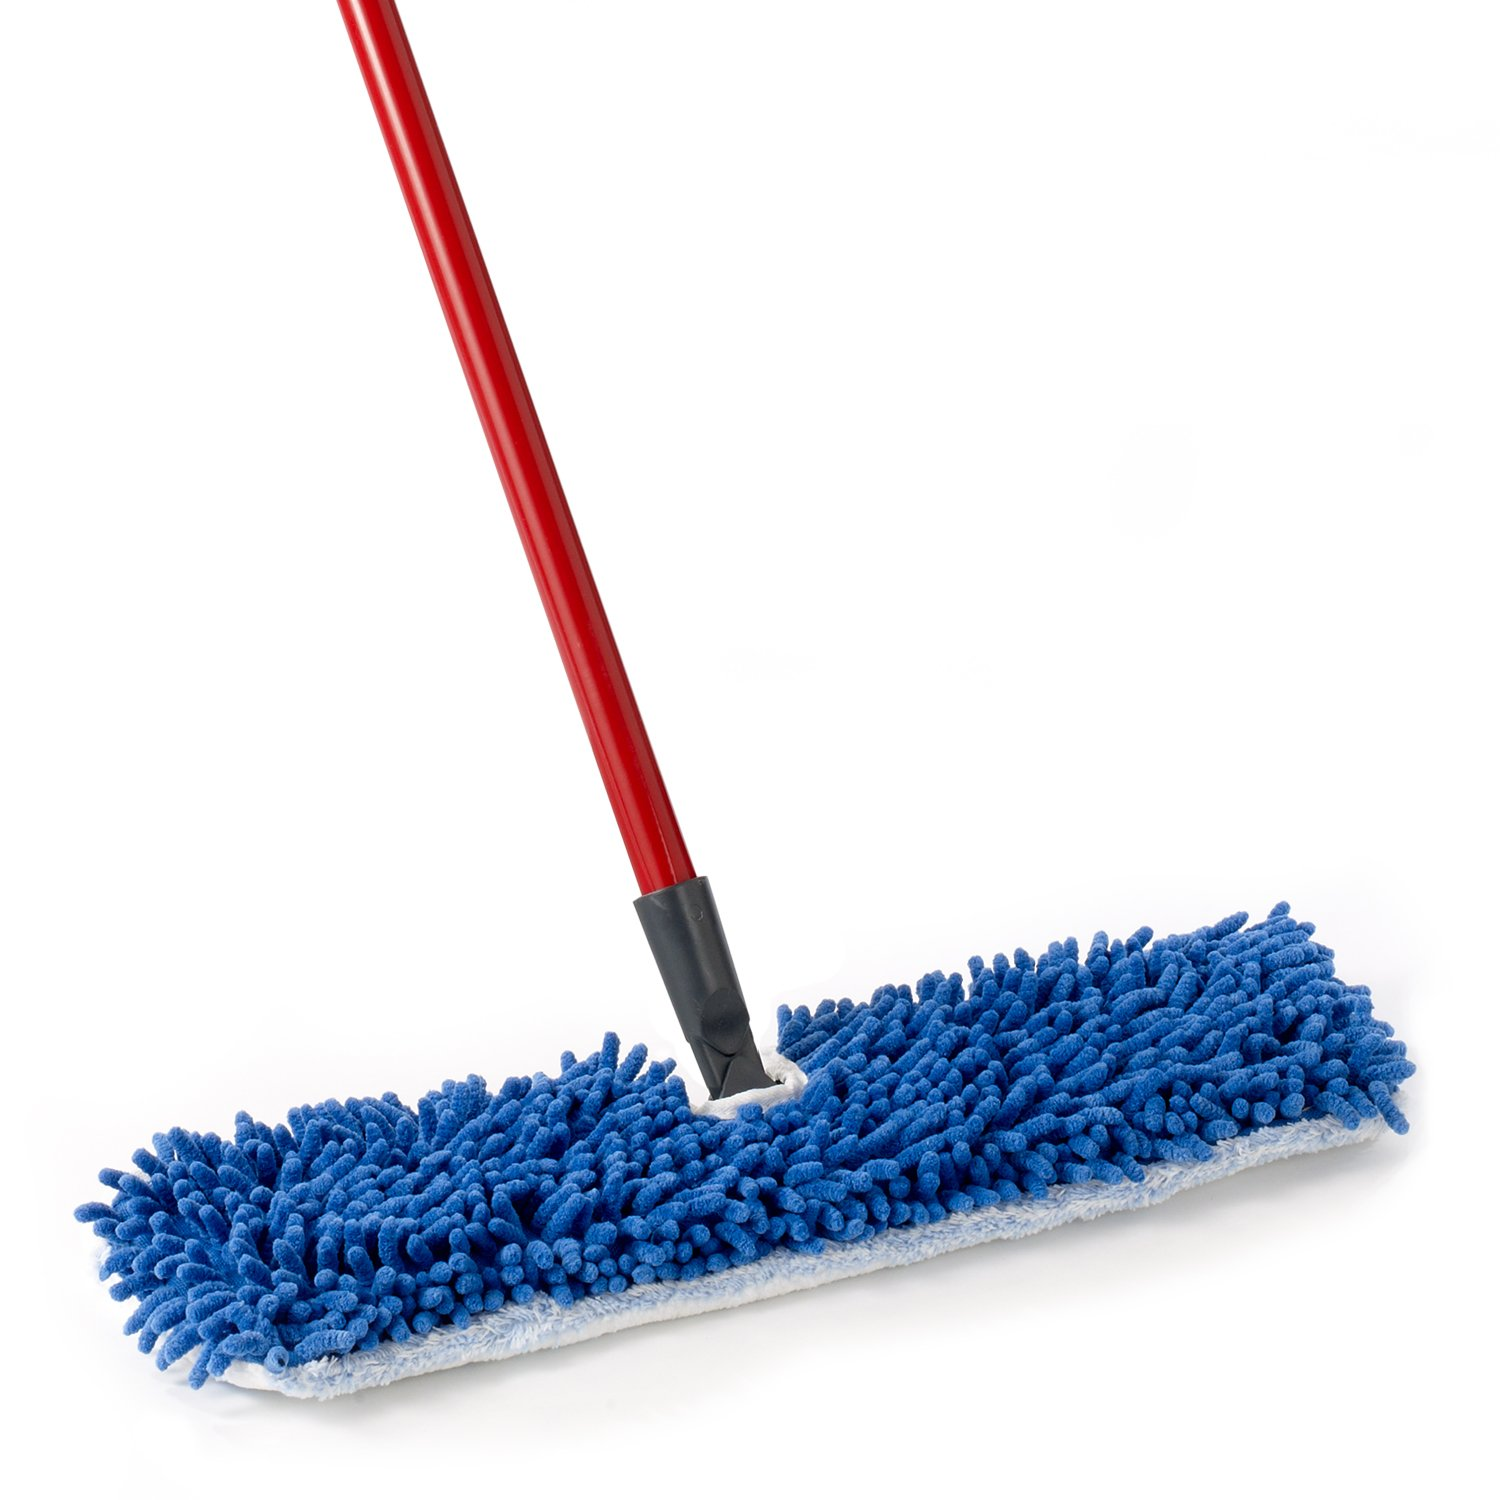 O-Cedar This flip mop Features a Head That is Double Sided Microfiber & Chenille for Wet and Dry Cleaning o dedar by O-Cedar